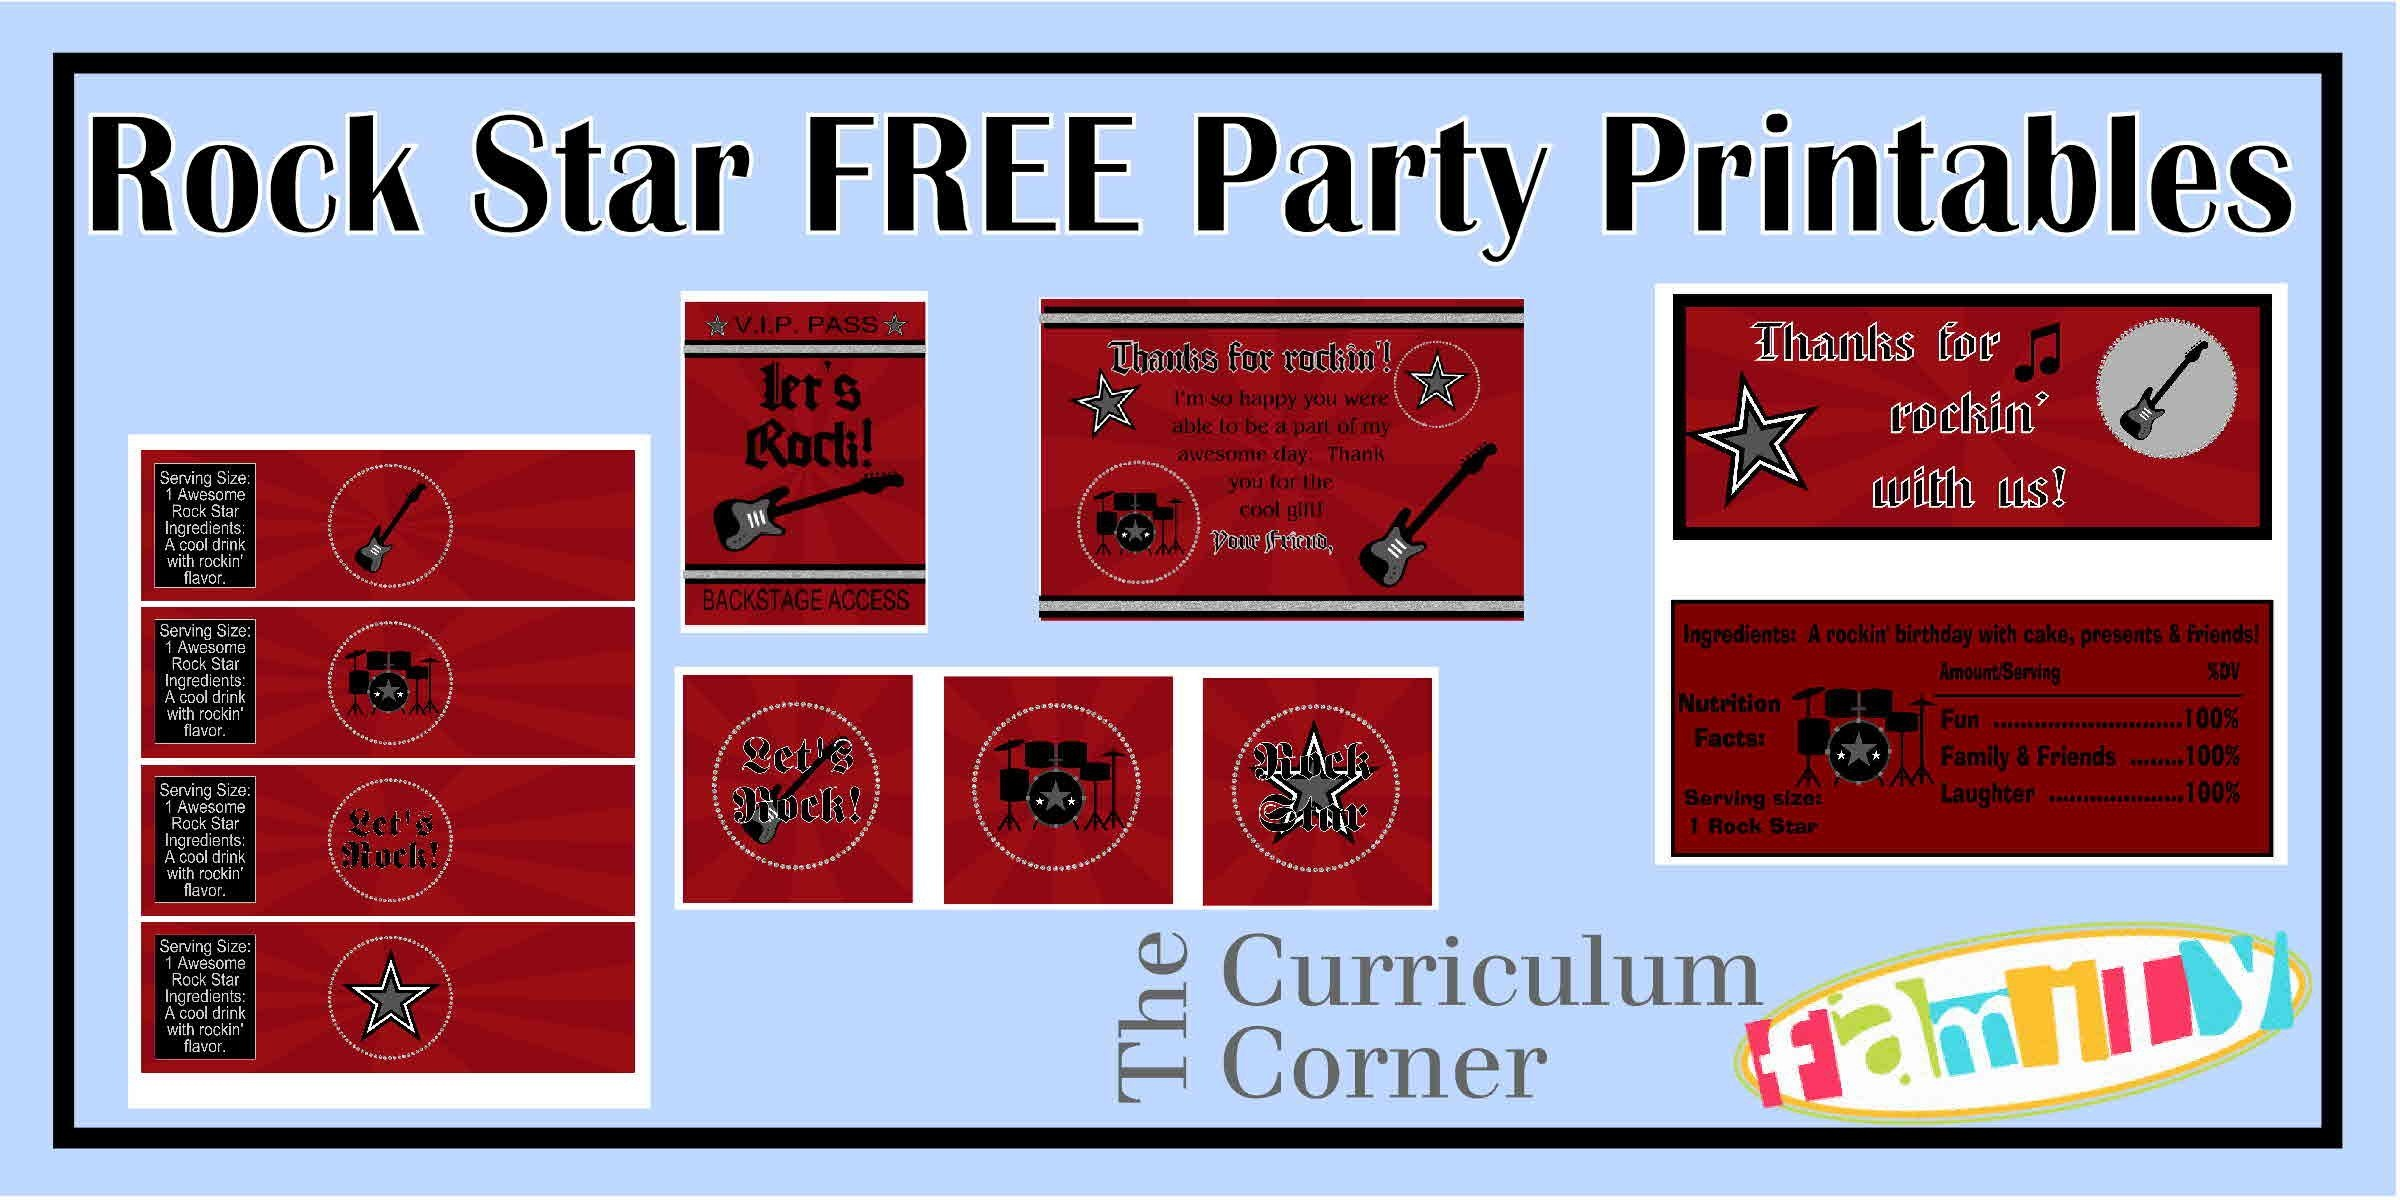 Freebie Rock Star Party Printables For Your Rock Star's Birthday - Free Printable Rockstar Birthday Invitations